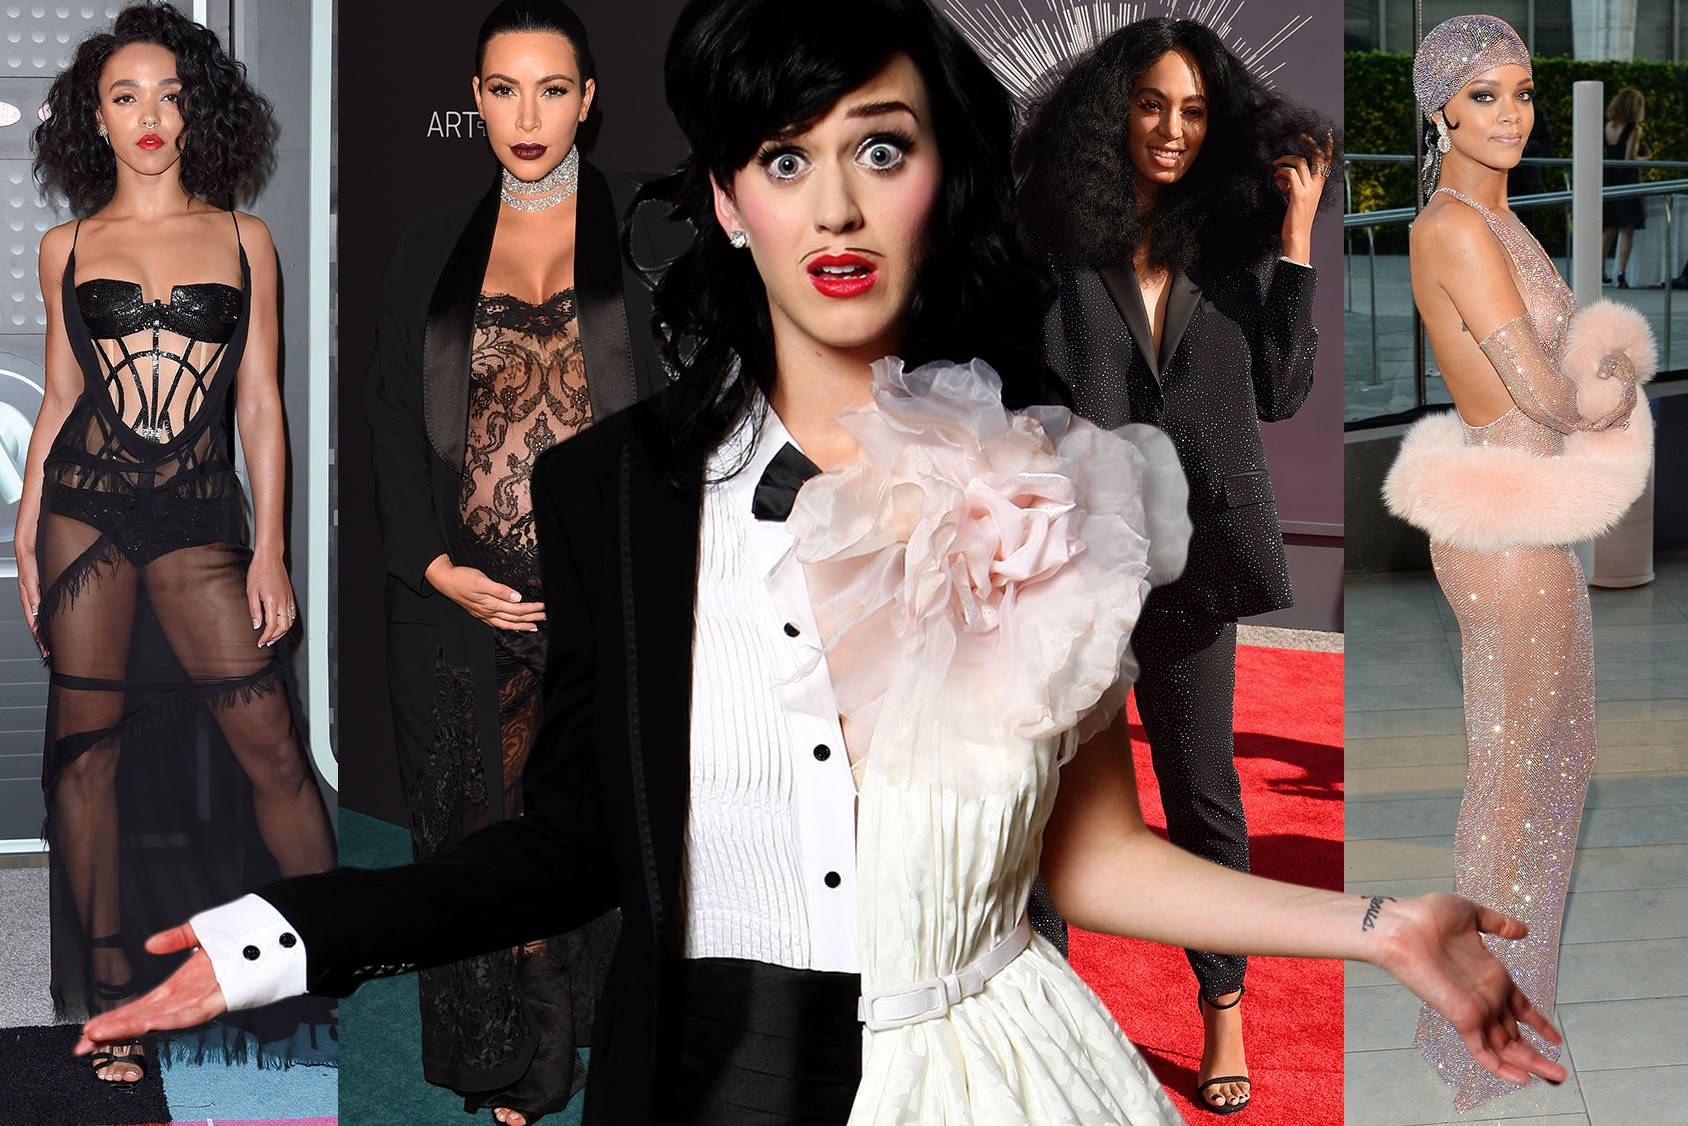 Rulers of the red carpet: FKA Twigs, Kim Kardashian, Katy Perry, Solange Knowles and Rihanna, Getty Images.